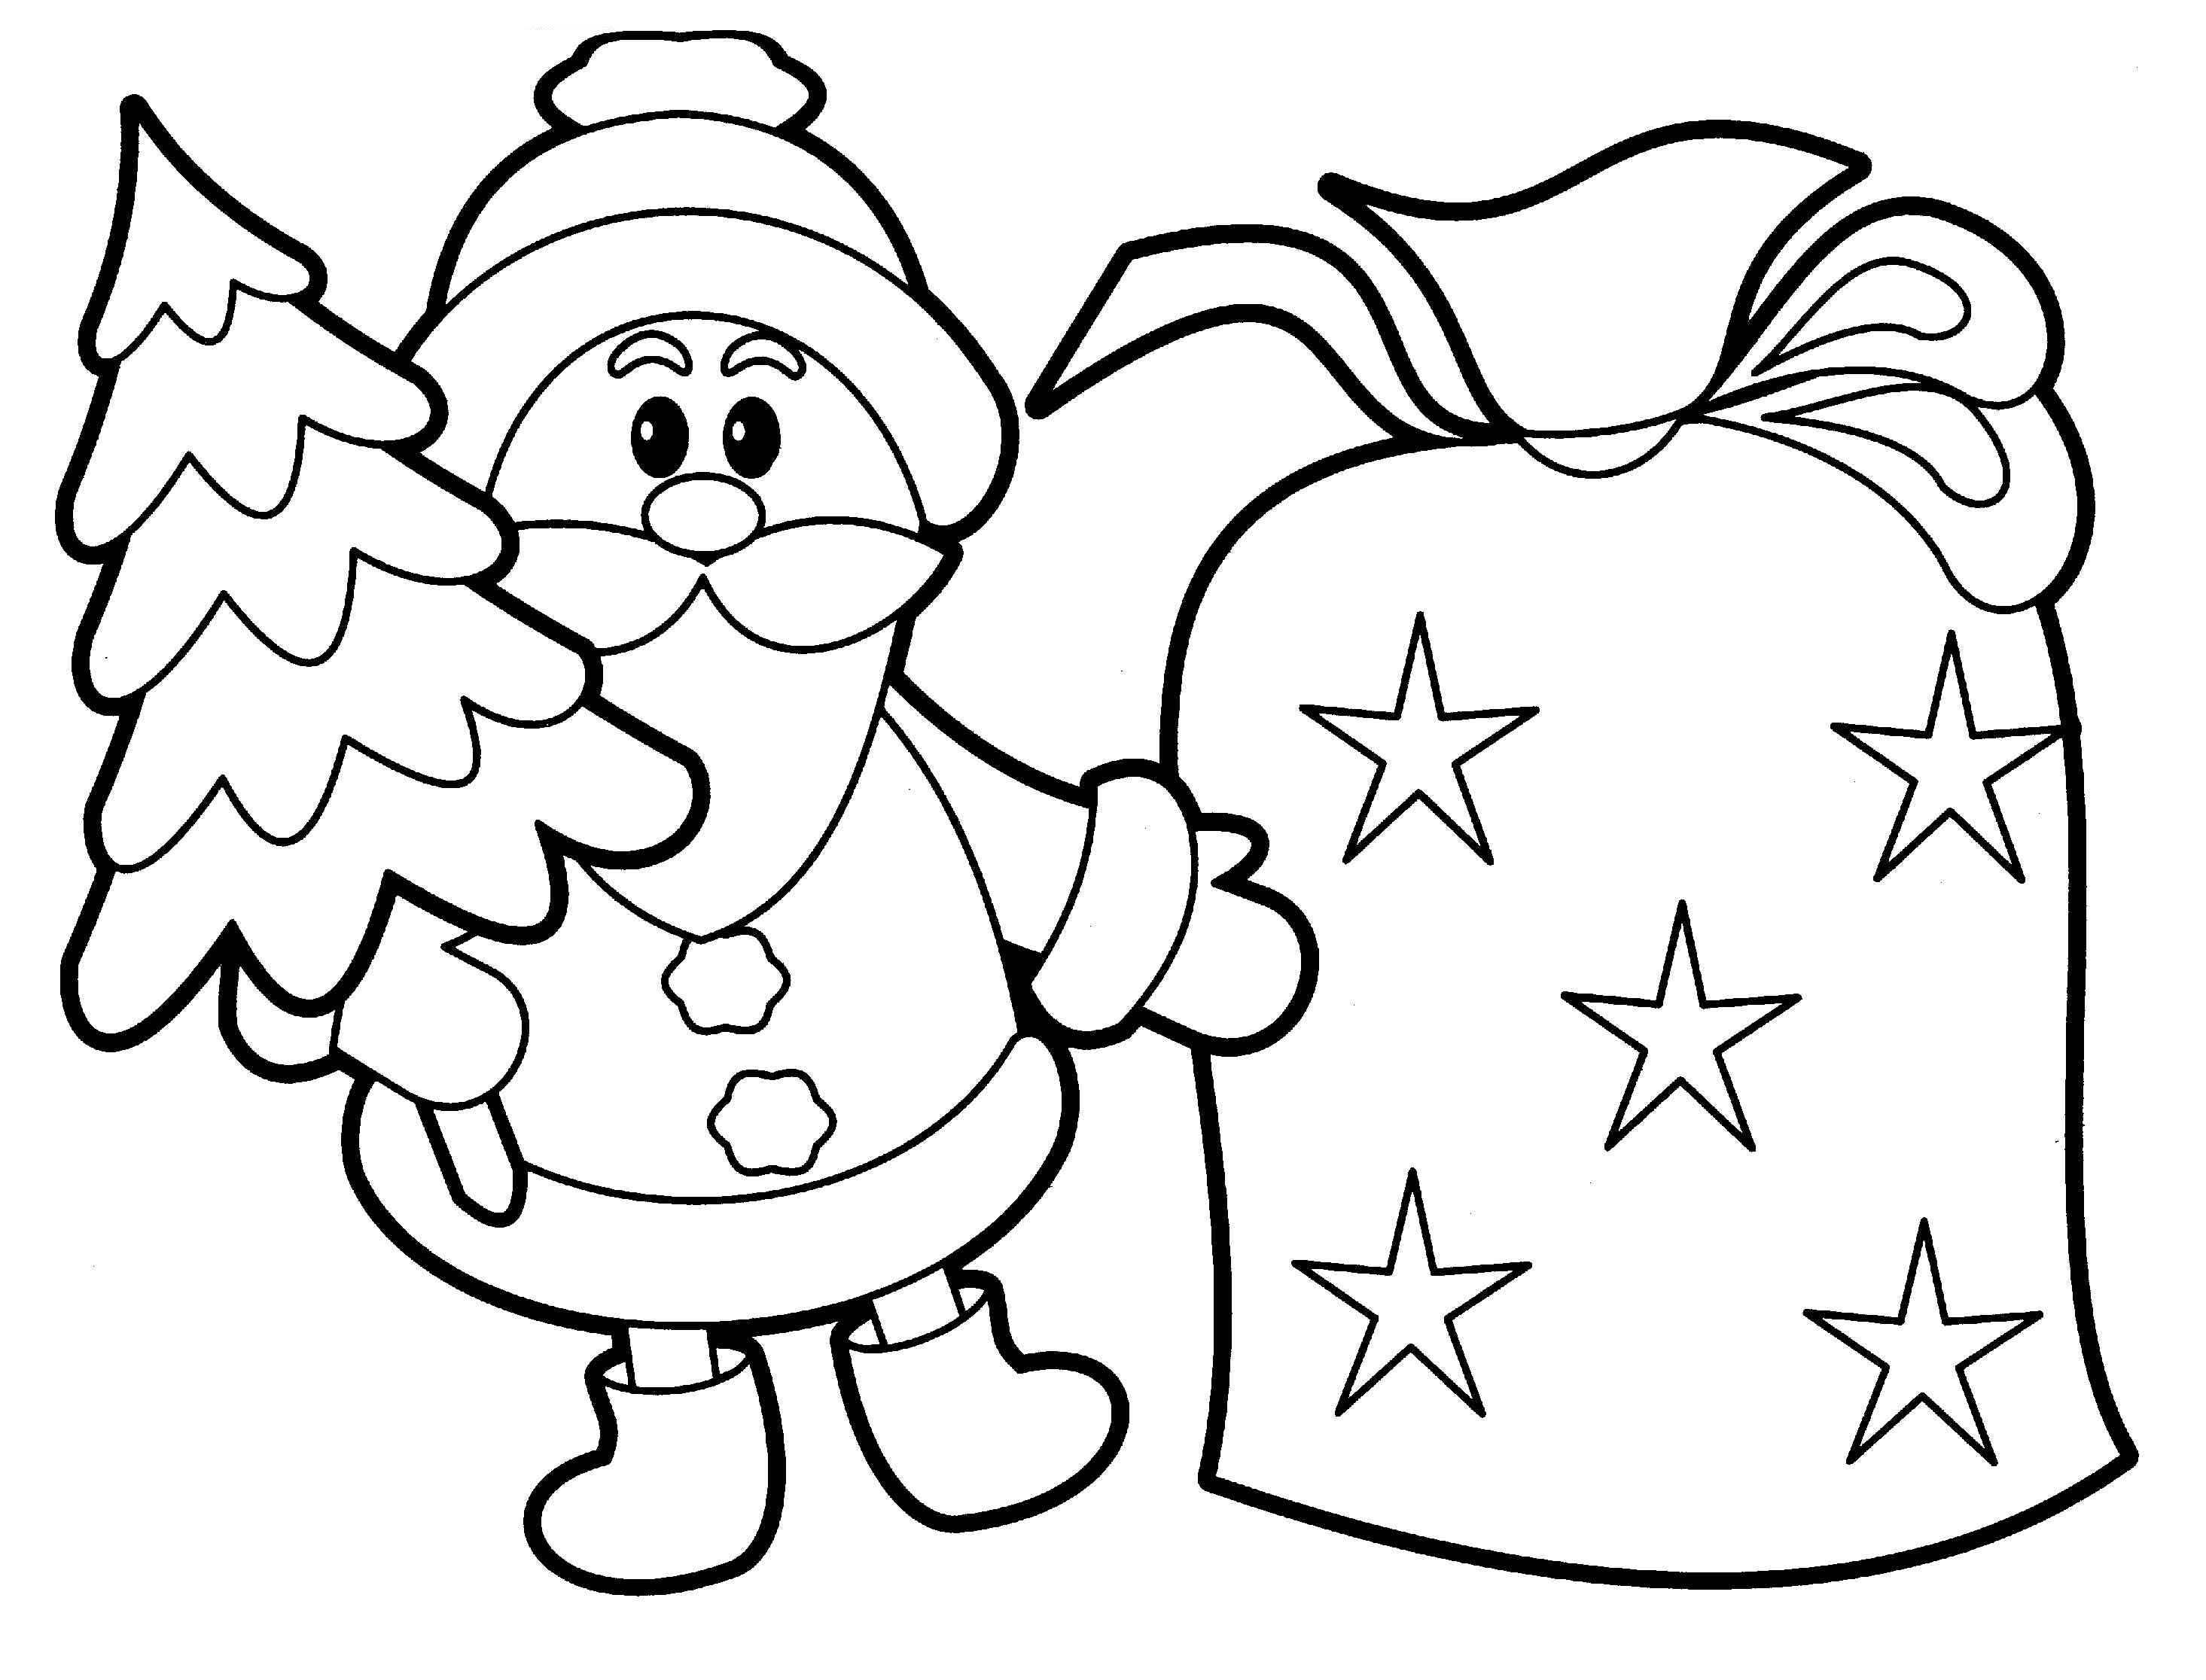 Xmas Coloring Book With Santa Claus Pages Gallery Free Books